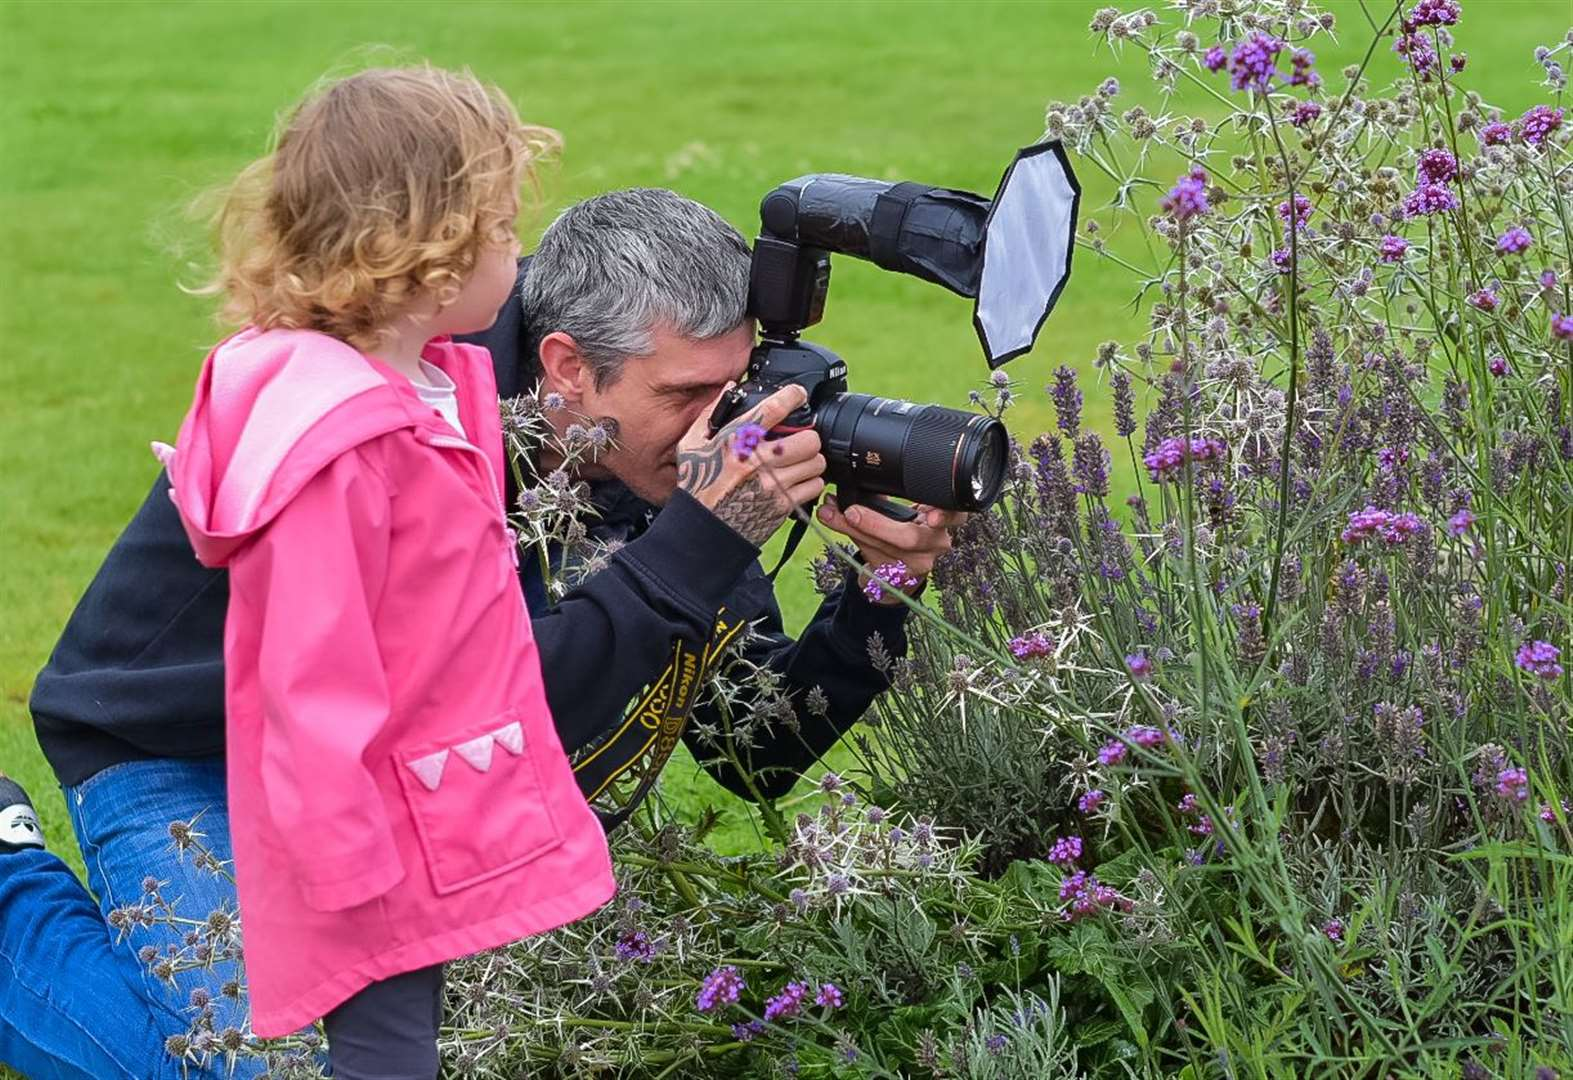 What is the rare insect photographer Nick thinks may be a first for Rutland?